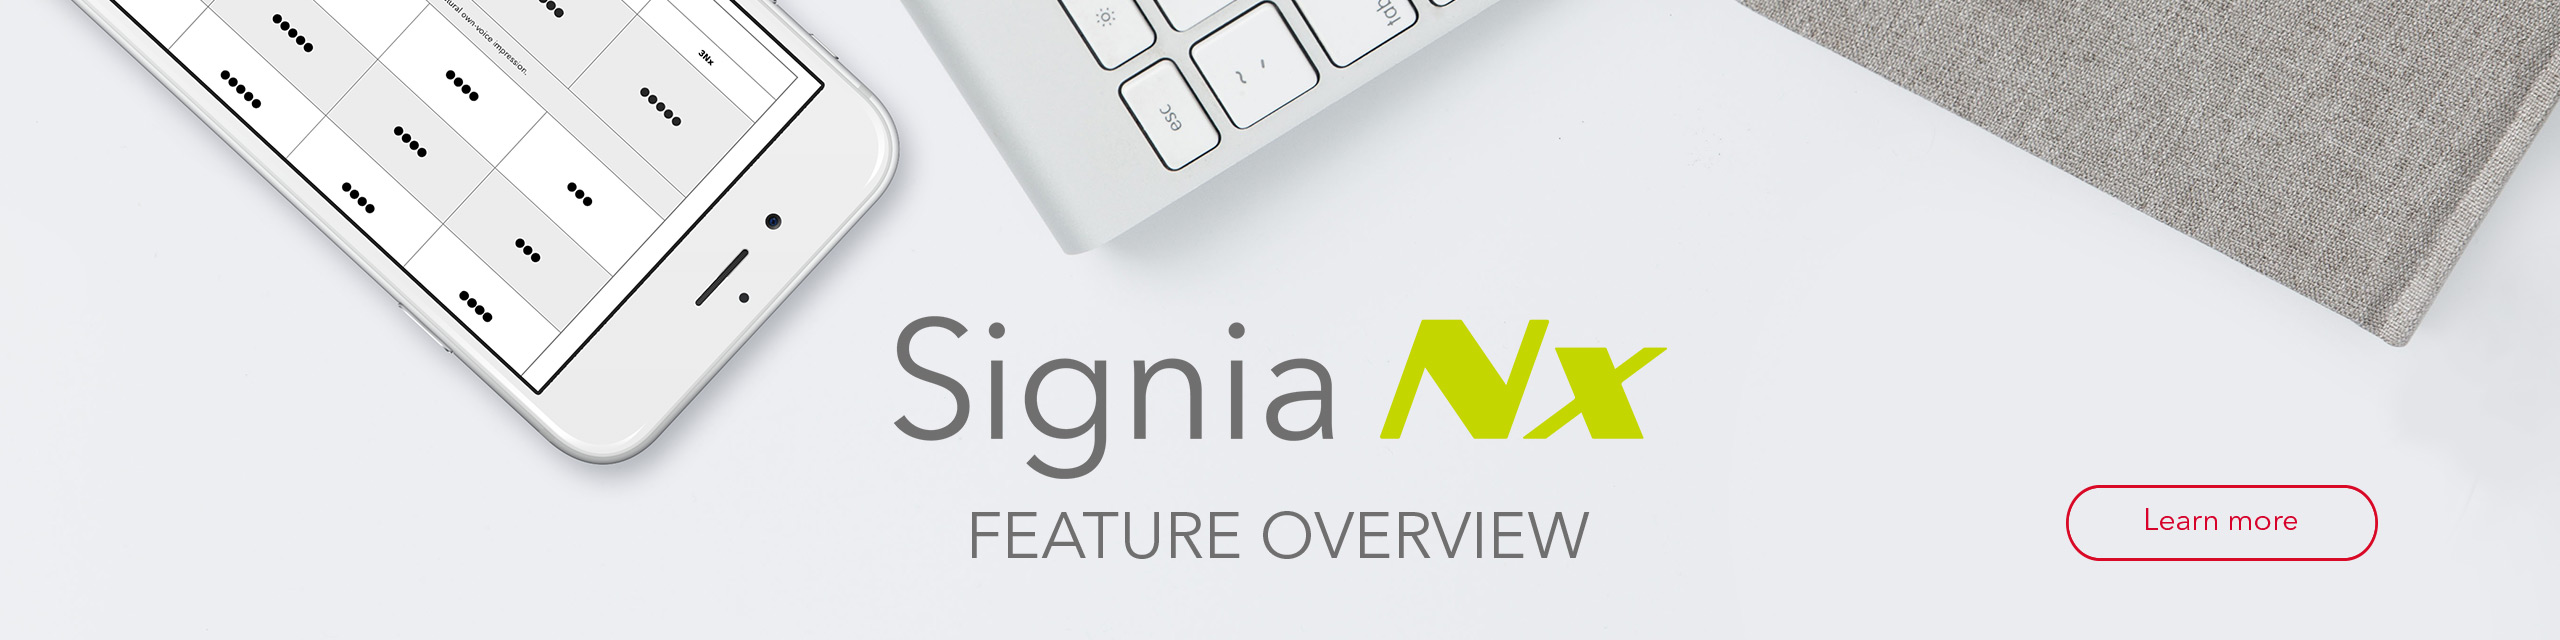 Teaser_Signia-Nx-features_2560x640px